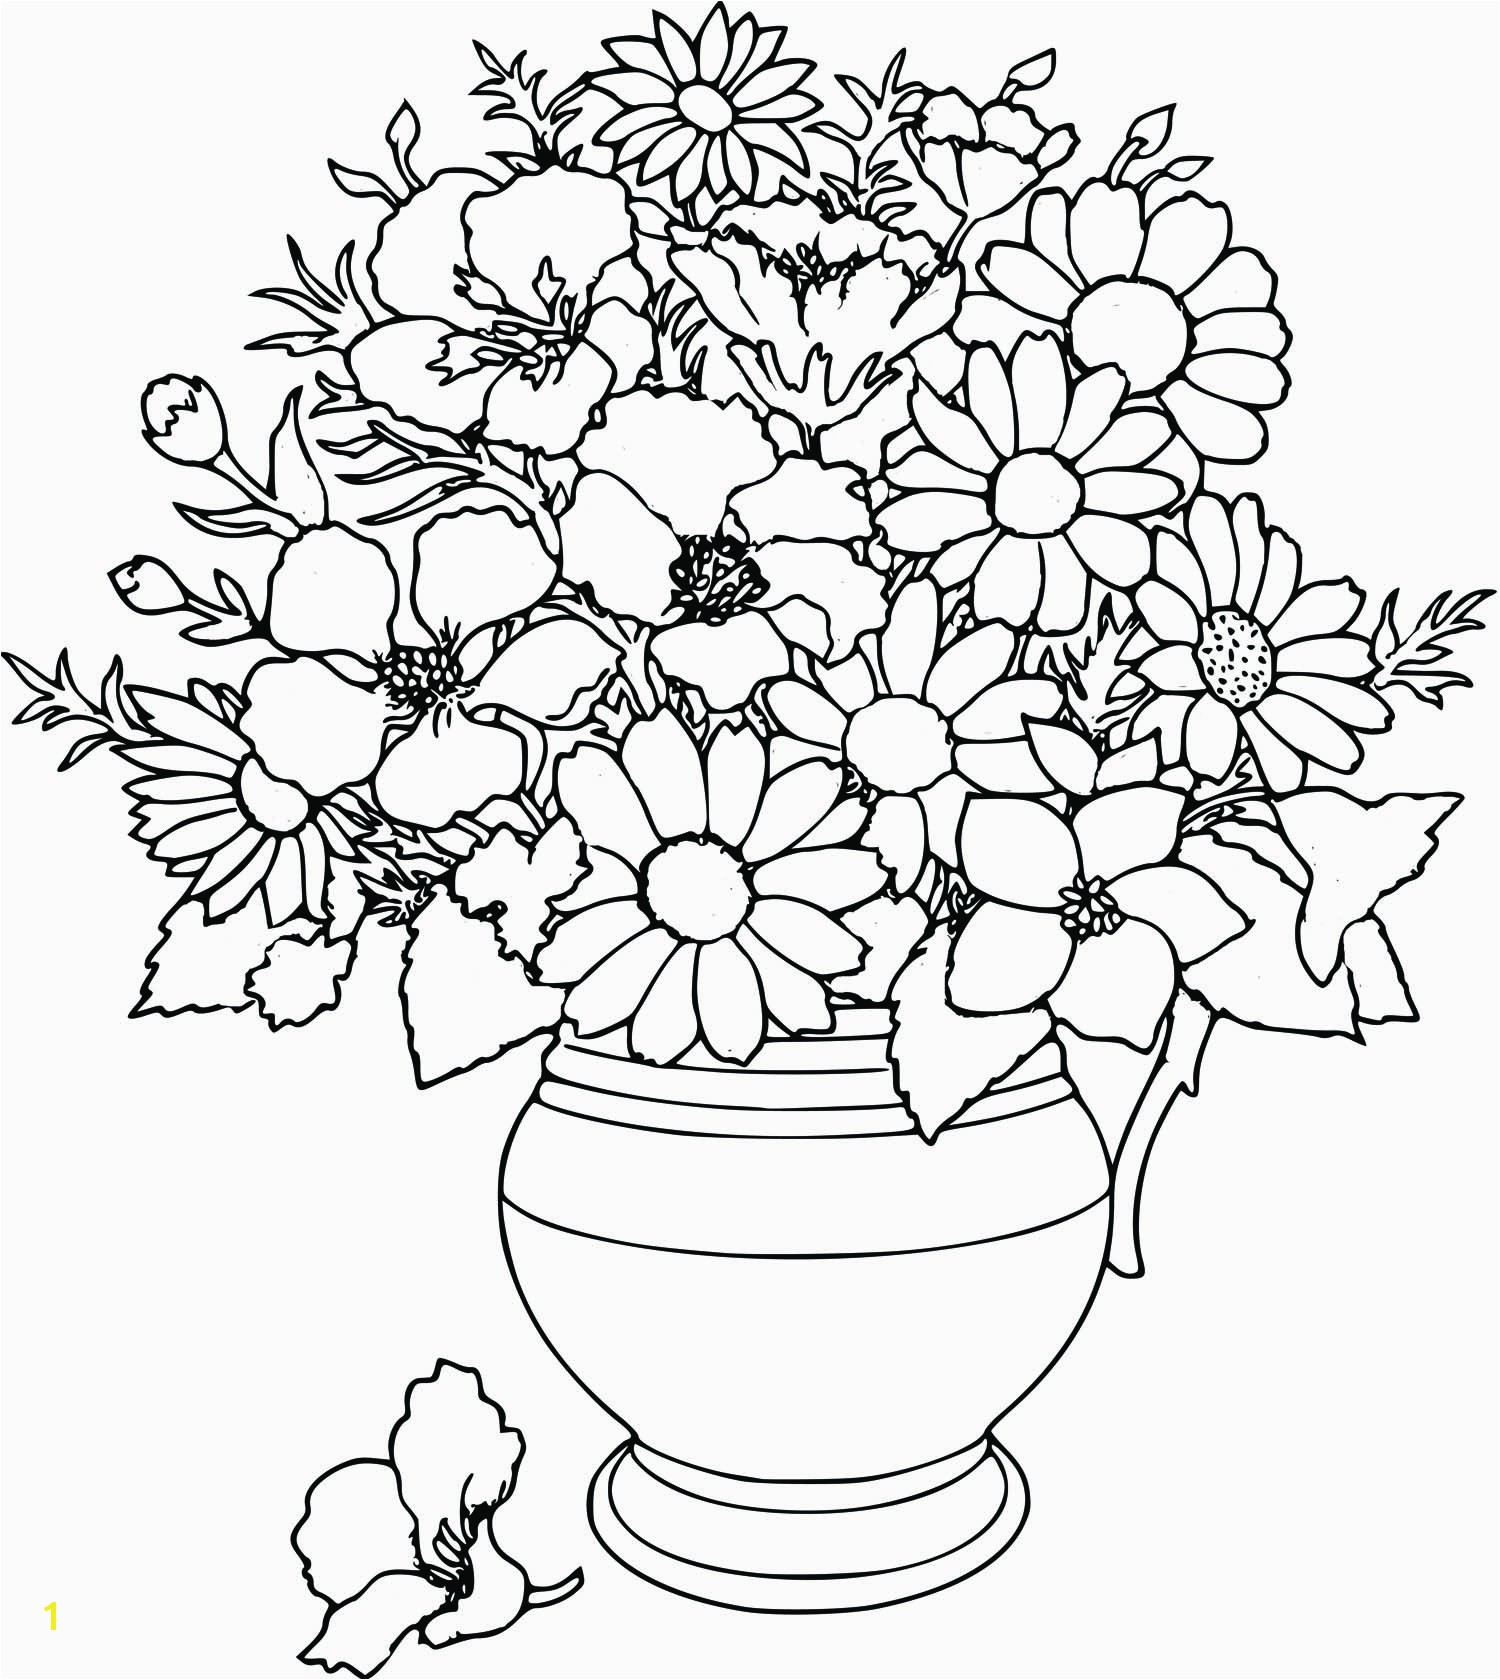 Best of Free Flower Coloring Pages Printable Download 3 o Flower Coloring Pages Printable